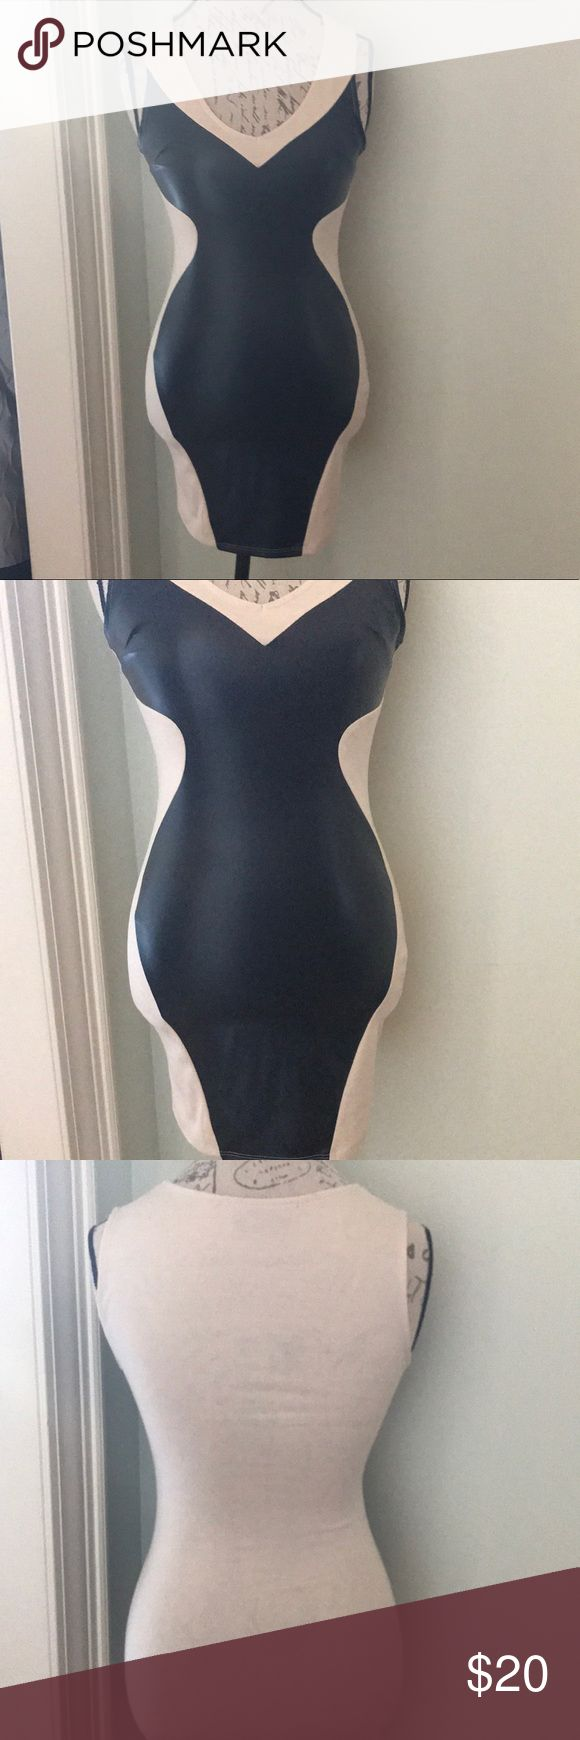 Sexy Nasty Gal Nude & Black Bodycon Dress Sz S This body con dress from Nasty Gal features black vegan leather insets on a nude cream polyester/rayon/spandex sleeveless sheath.  Excellent condition Size small Garment is somewhat opaque, but I would advise wearing a beige, nude, tan or neutral colored panty with it. Nasty Gal Dresses Mini